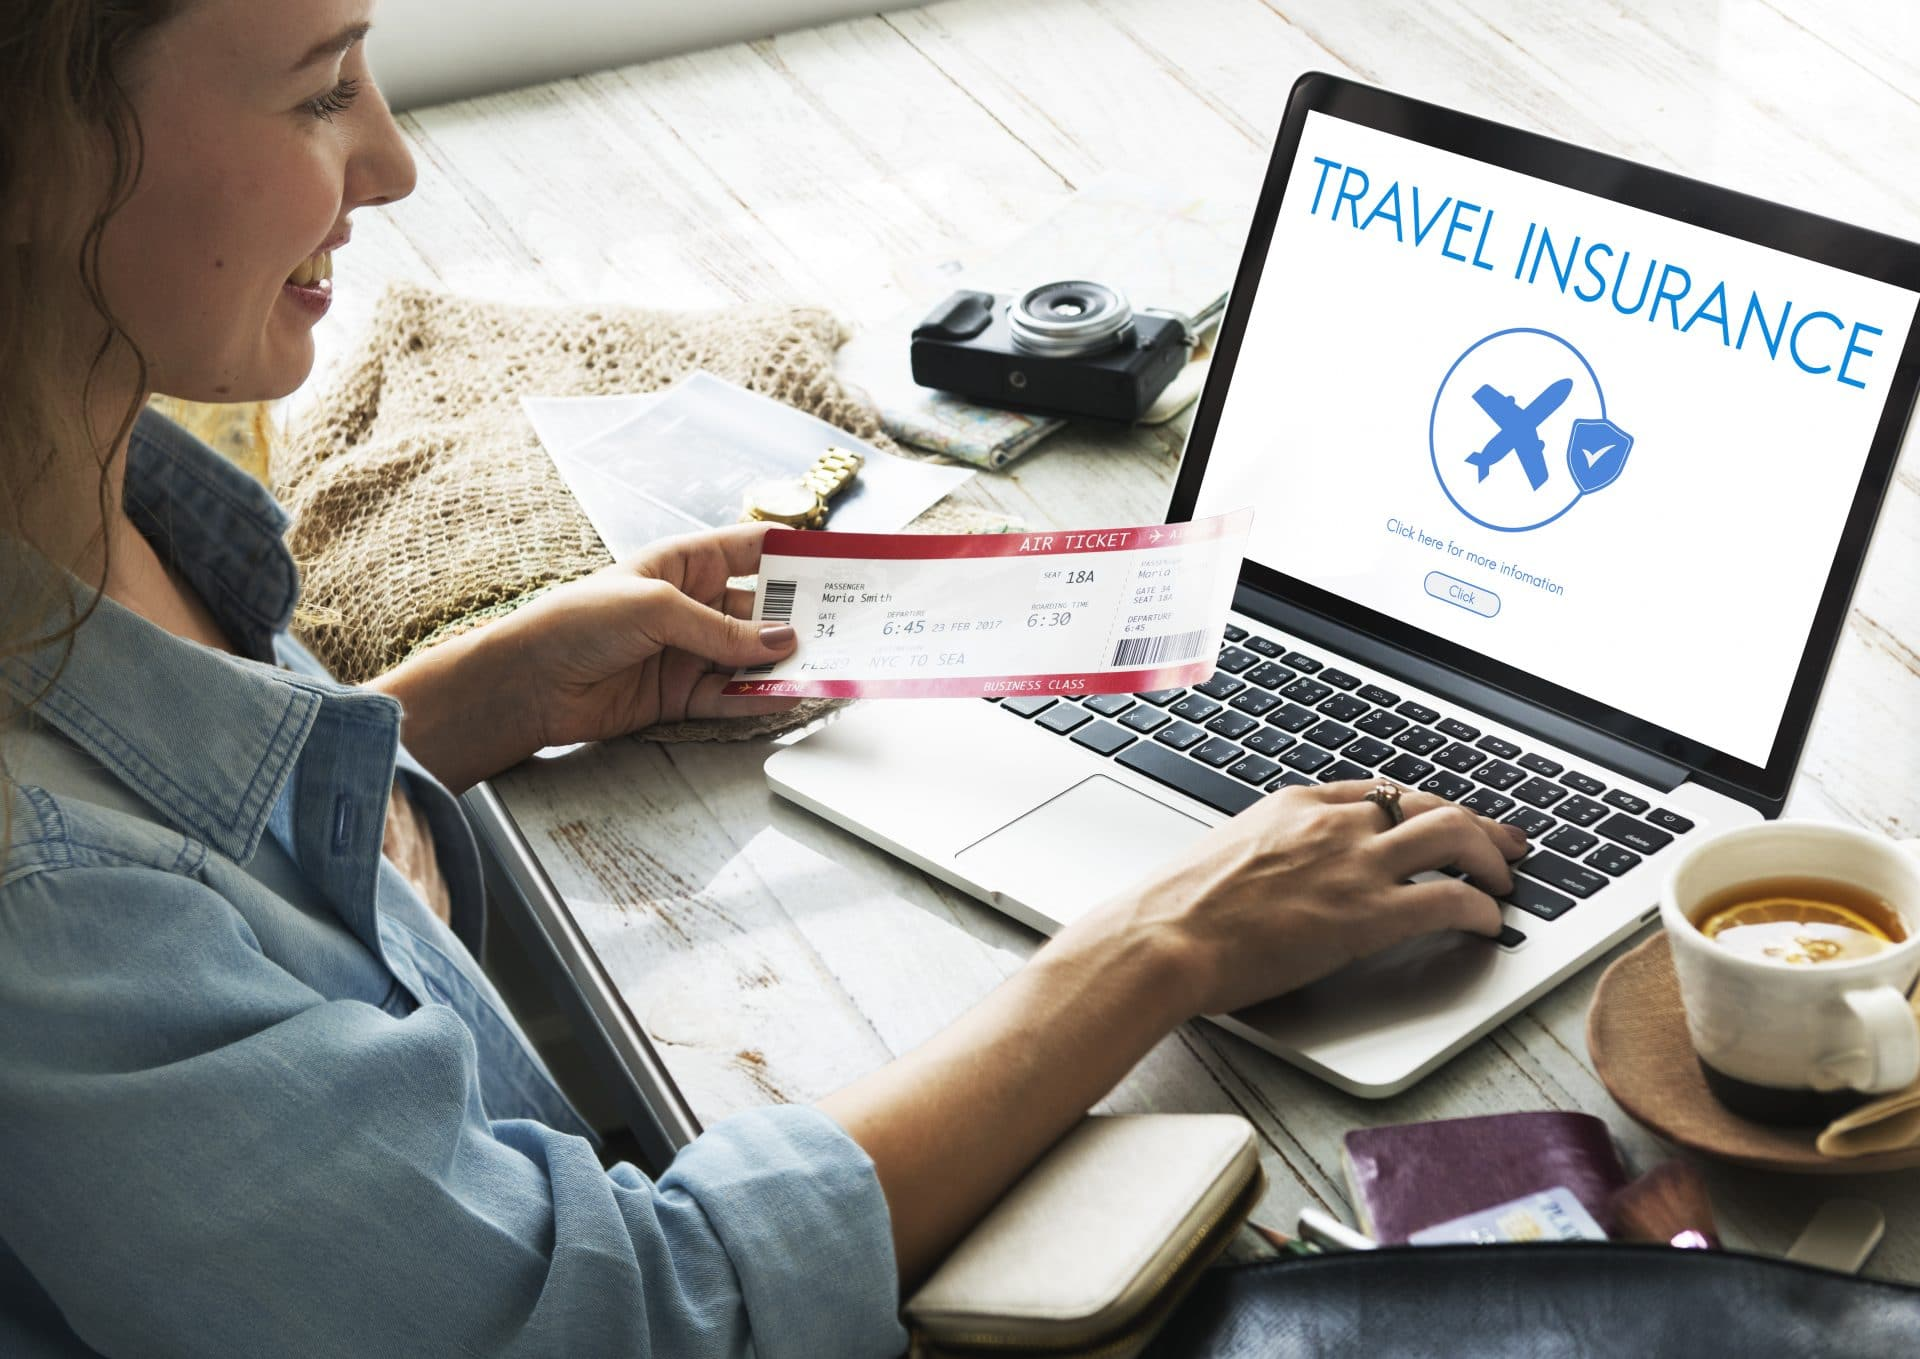 How to choose adventure travel insurance